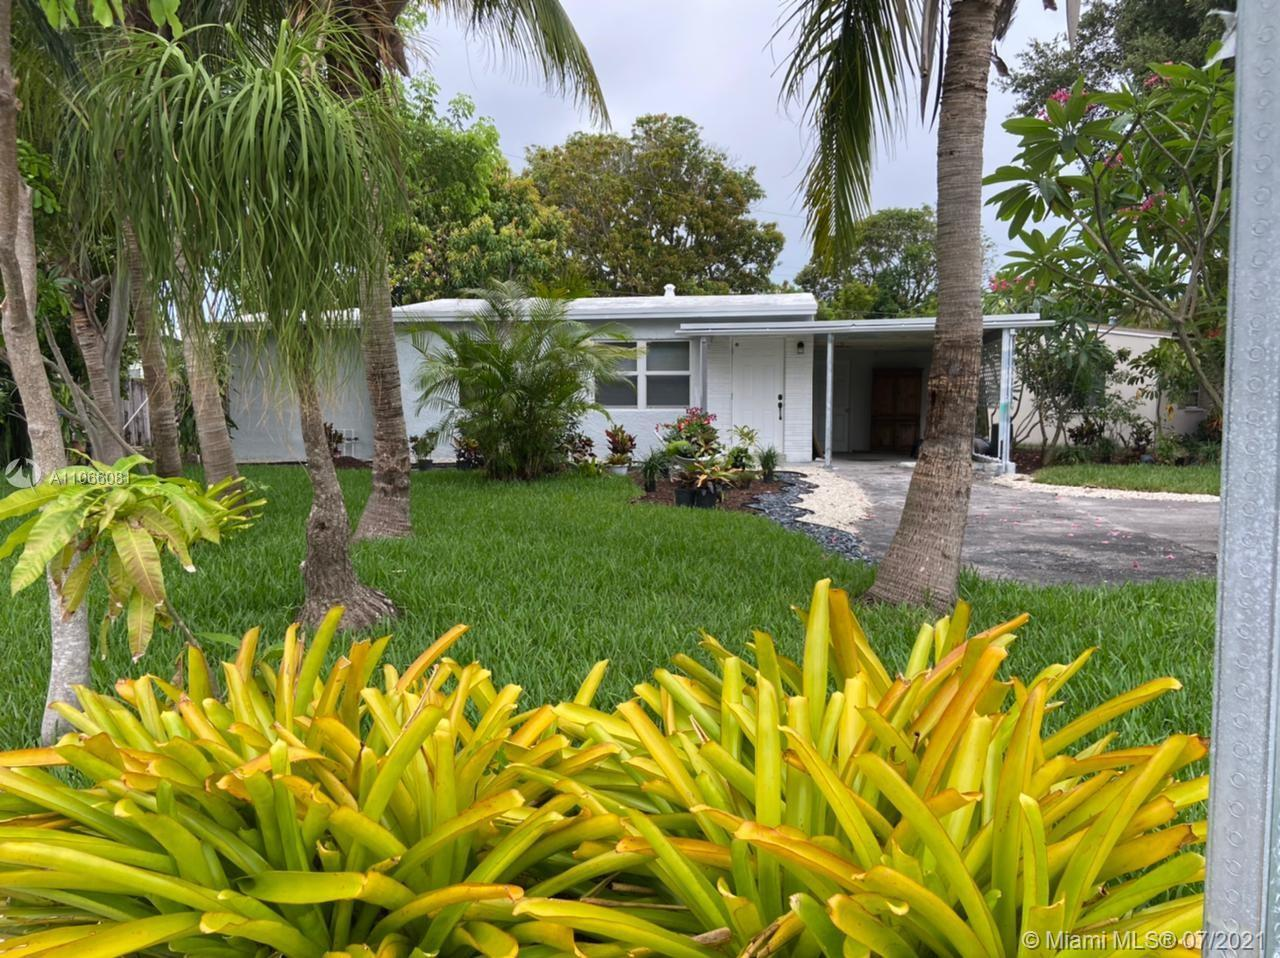 Fully remodeled 2/2 home in a large corner lot, located only 5 minutes from the beach. Upgrades incl